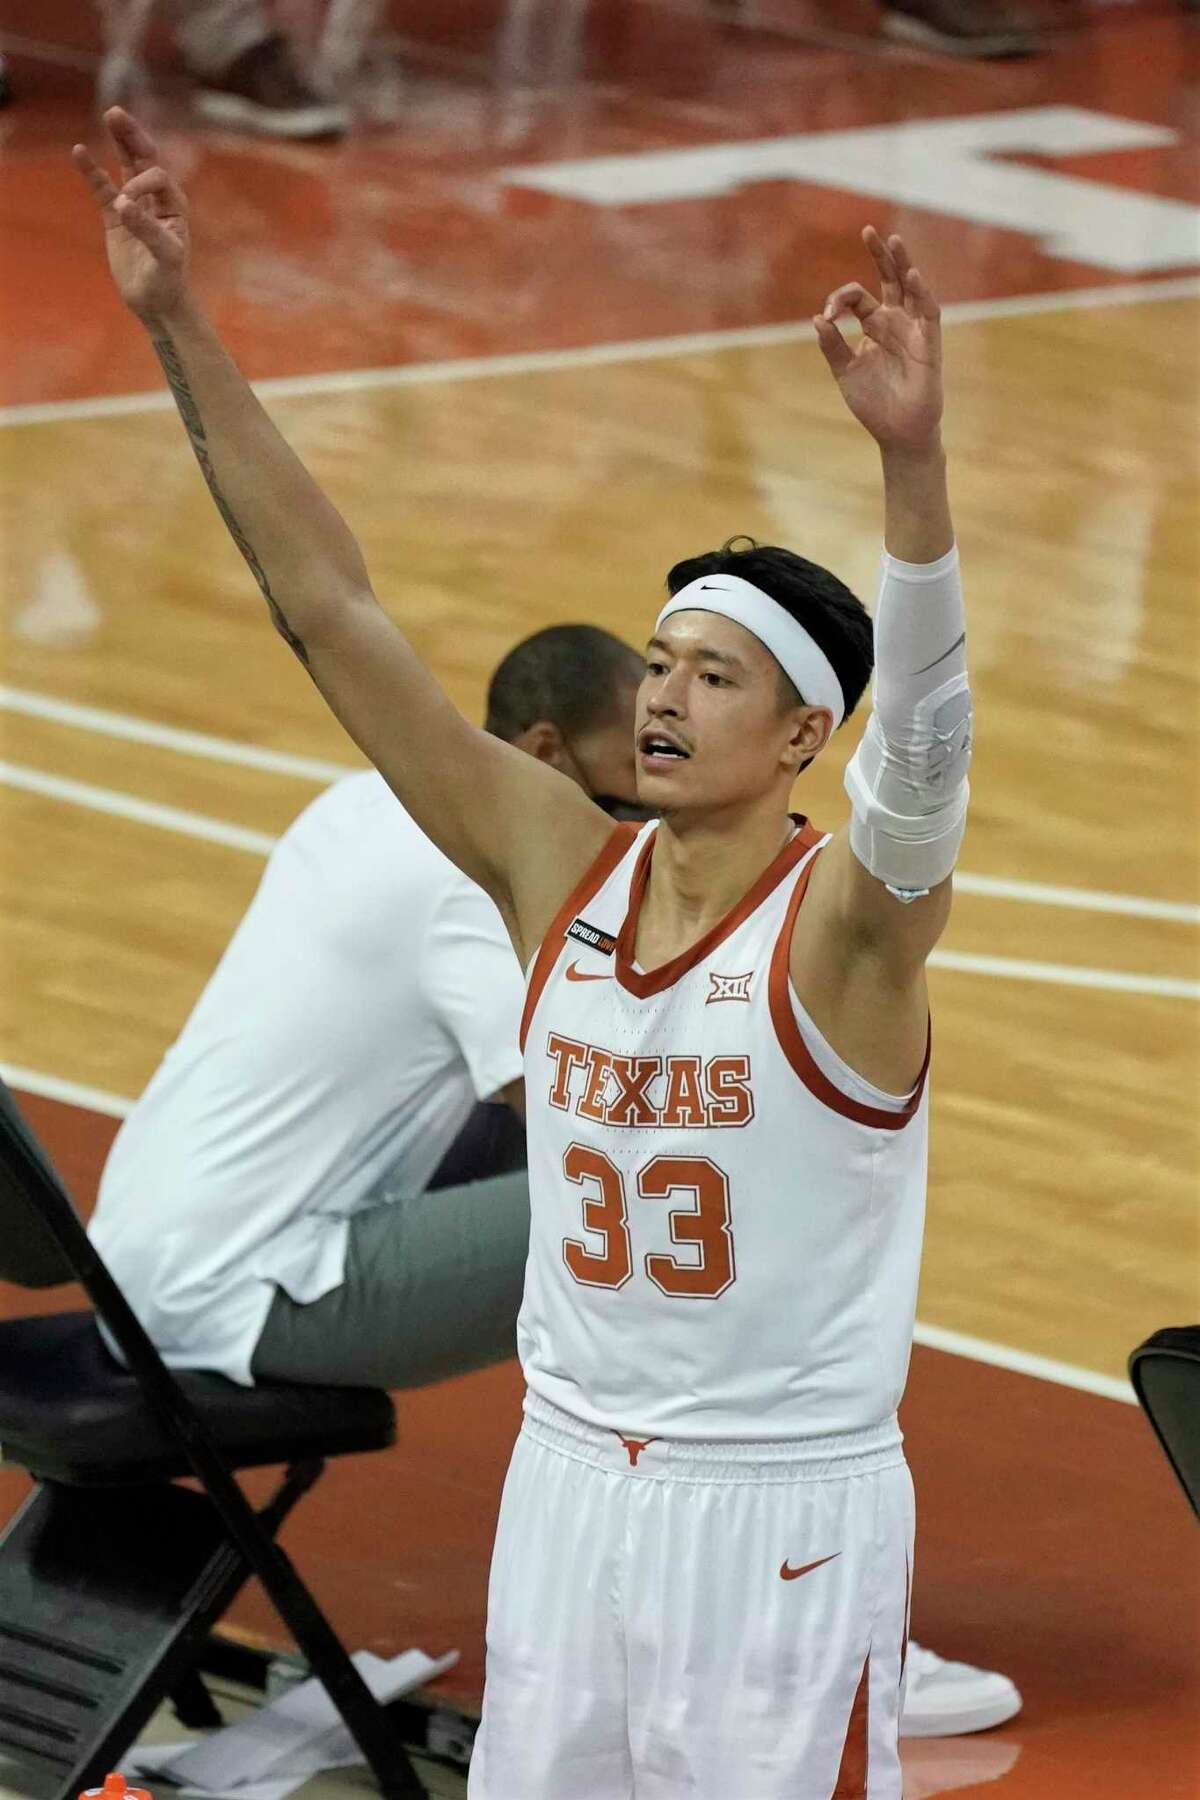 Texas' Kamaka Hepa (33) reacts after a teammate's three-point basket against Kansas State during the second half of an NCAA college basketball game in Austin, Texas, Saturday, Jan. 16, 2021. (AP Photo/Chuck Burton)